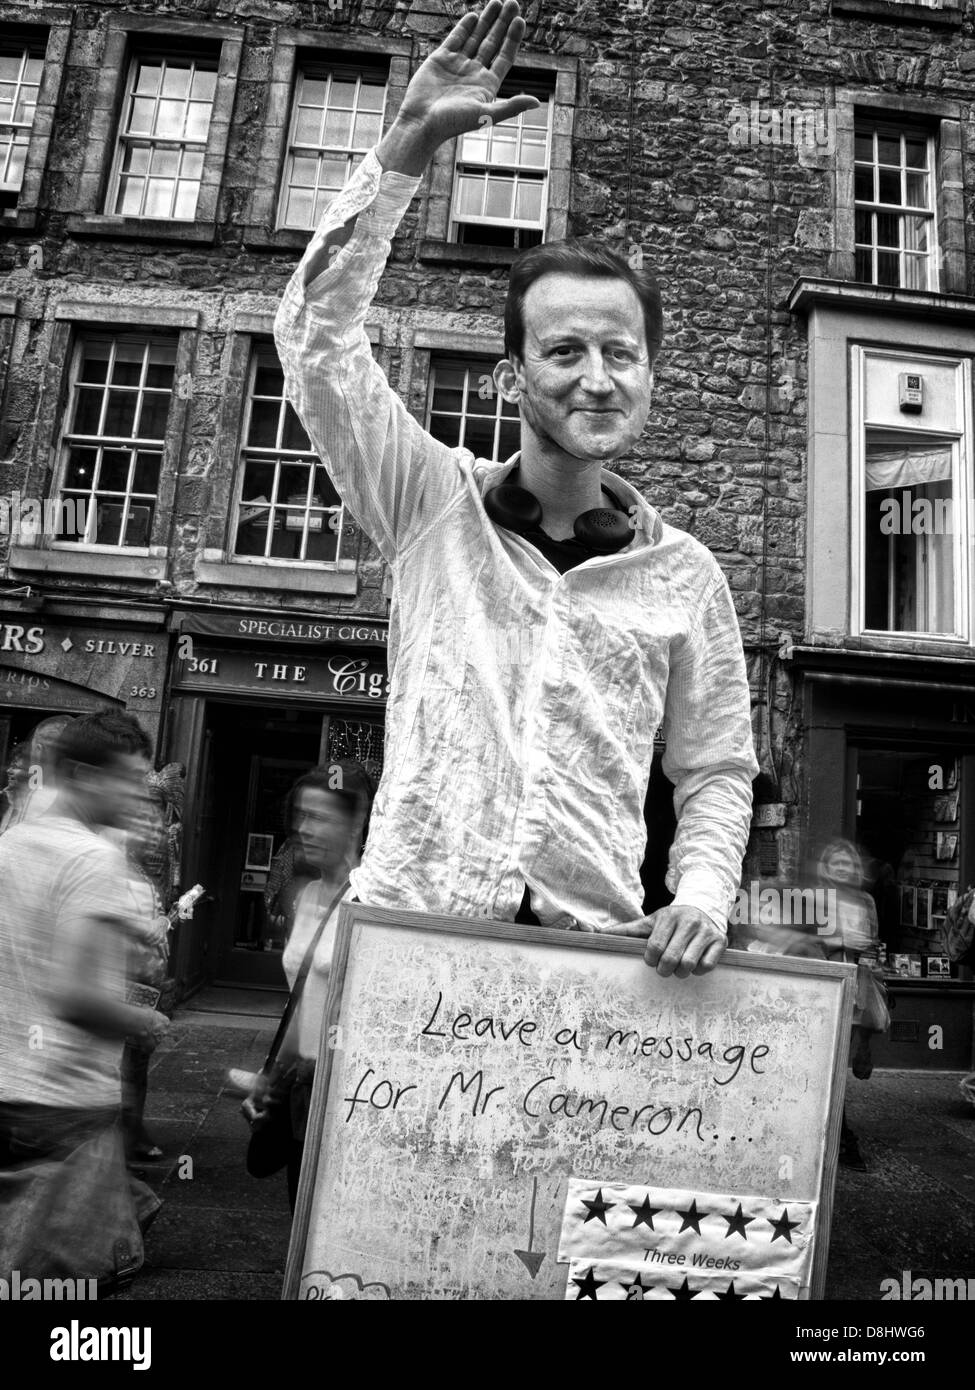 Dave,Cammeron,Cameroon,satire,at,the,August,Edinburgh,Festival,UK,mono,b/w,black,white,respected,not,hated,collation,Nick,Clegg,Cleg,cuts,austerity,crash,broken,promises,tory,leader,GB,great,british,witney,PM,Prime,Minister,politician,joke,jokes,joker,jokers,comedian,comedians,royal,mile,high,st,Gotonysmith,street,fringe,office,offices,parliament,Scotland,scots,Scottish,independence,hates,hater,of,Alex,Salmond,government,homerule,home,rule,SNP,gotonysmith,Buy Pictures of,Buy Images Of